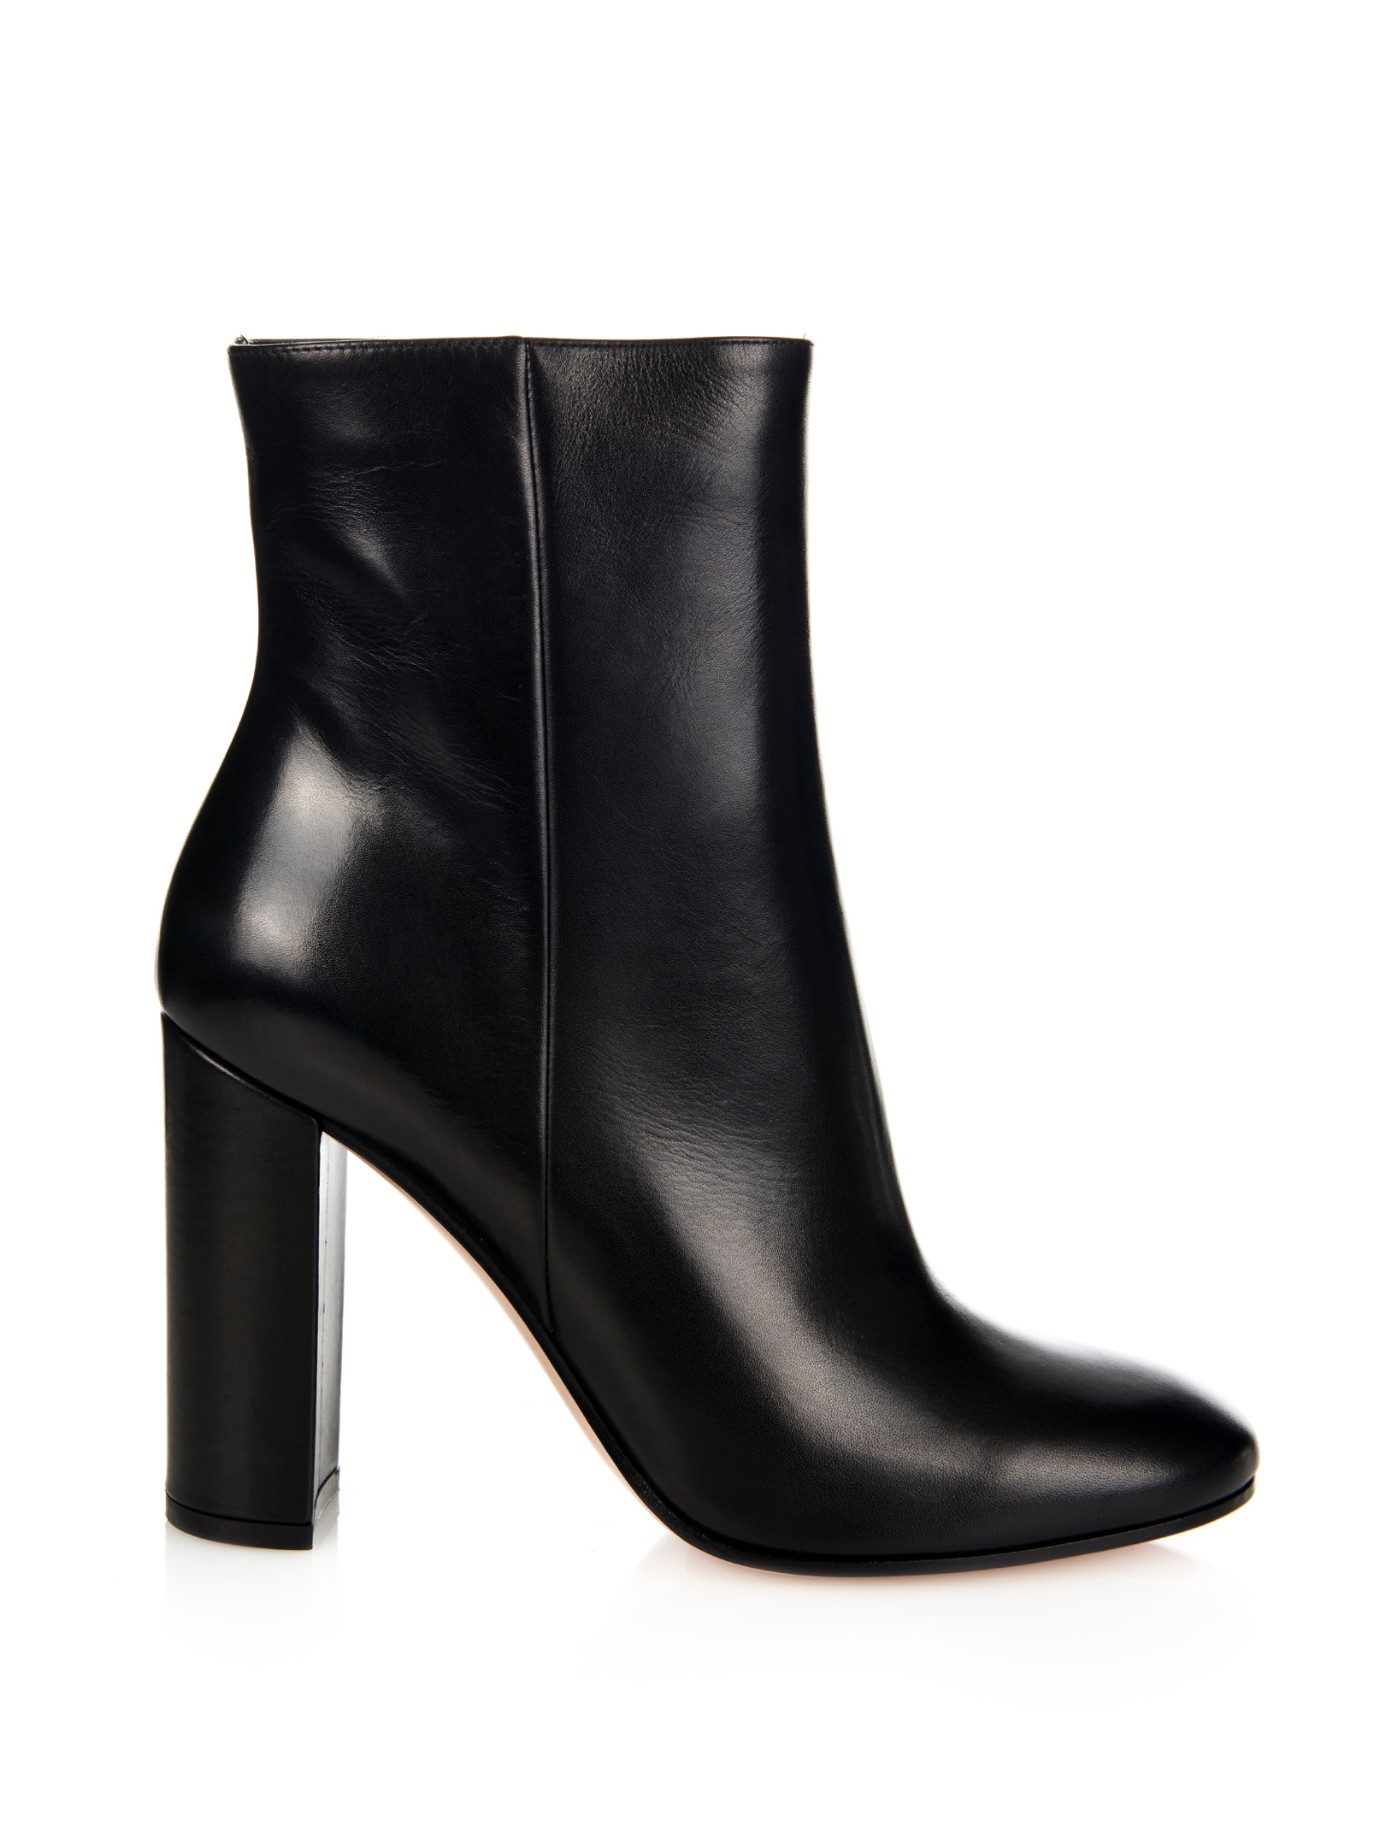 Clearance Pay With Visa Leather high boots Gianvito Rossi How Much Cheap Price Free Shipping Great Deals uQnIsMSpG